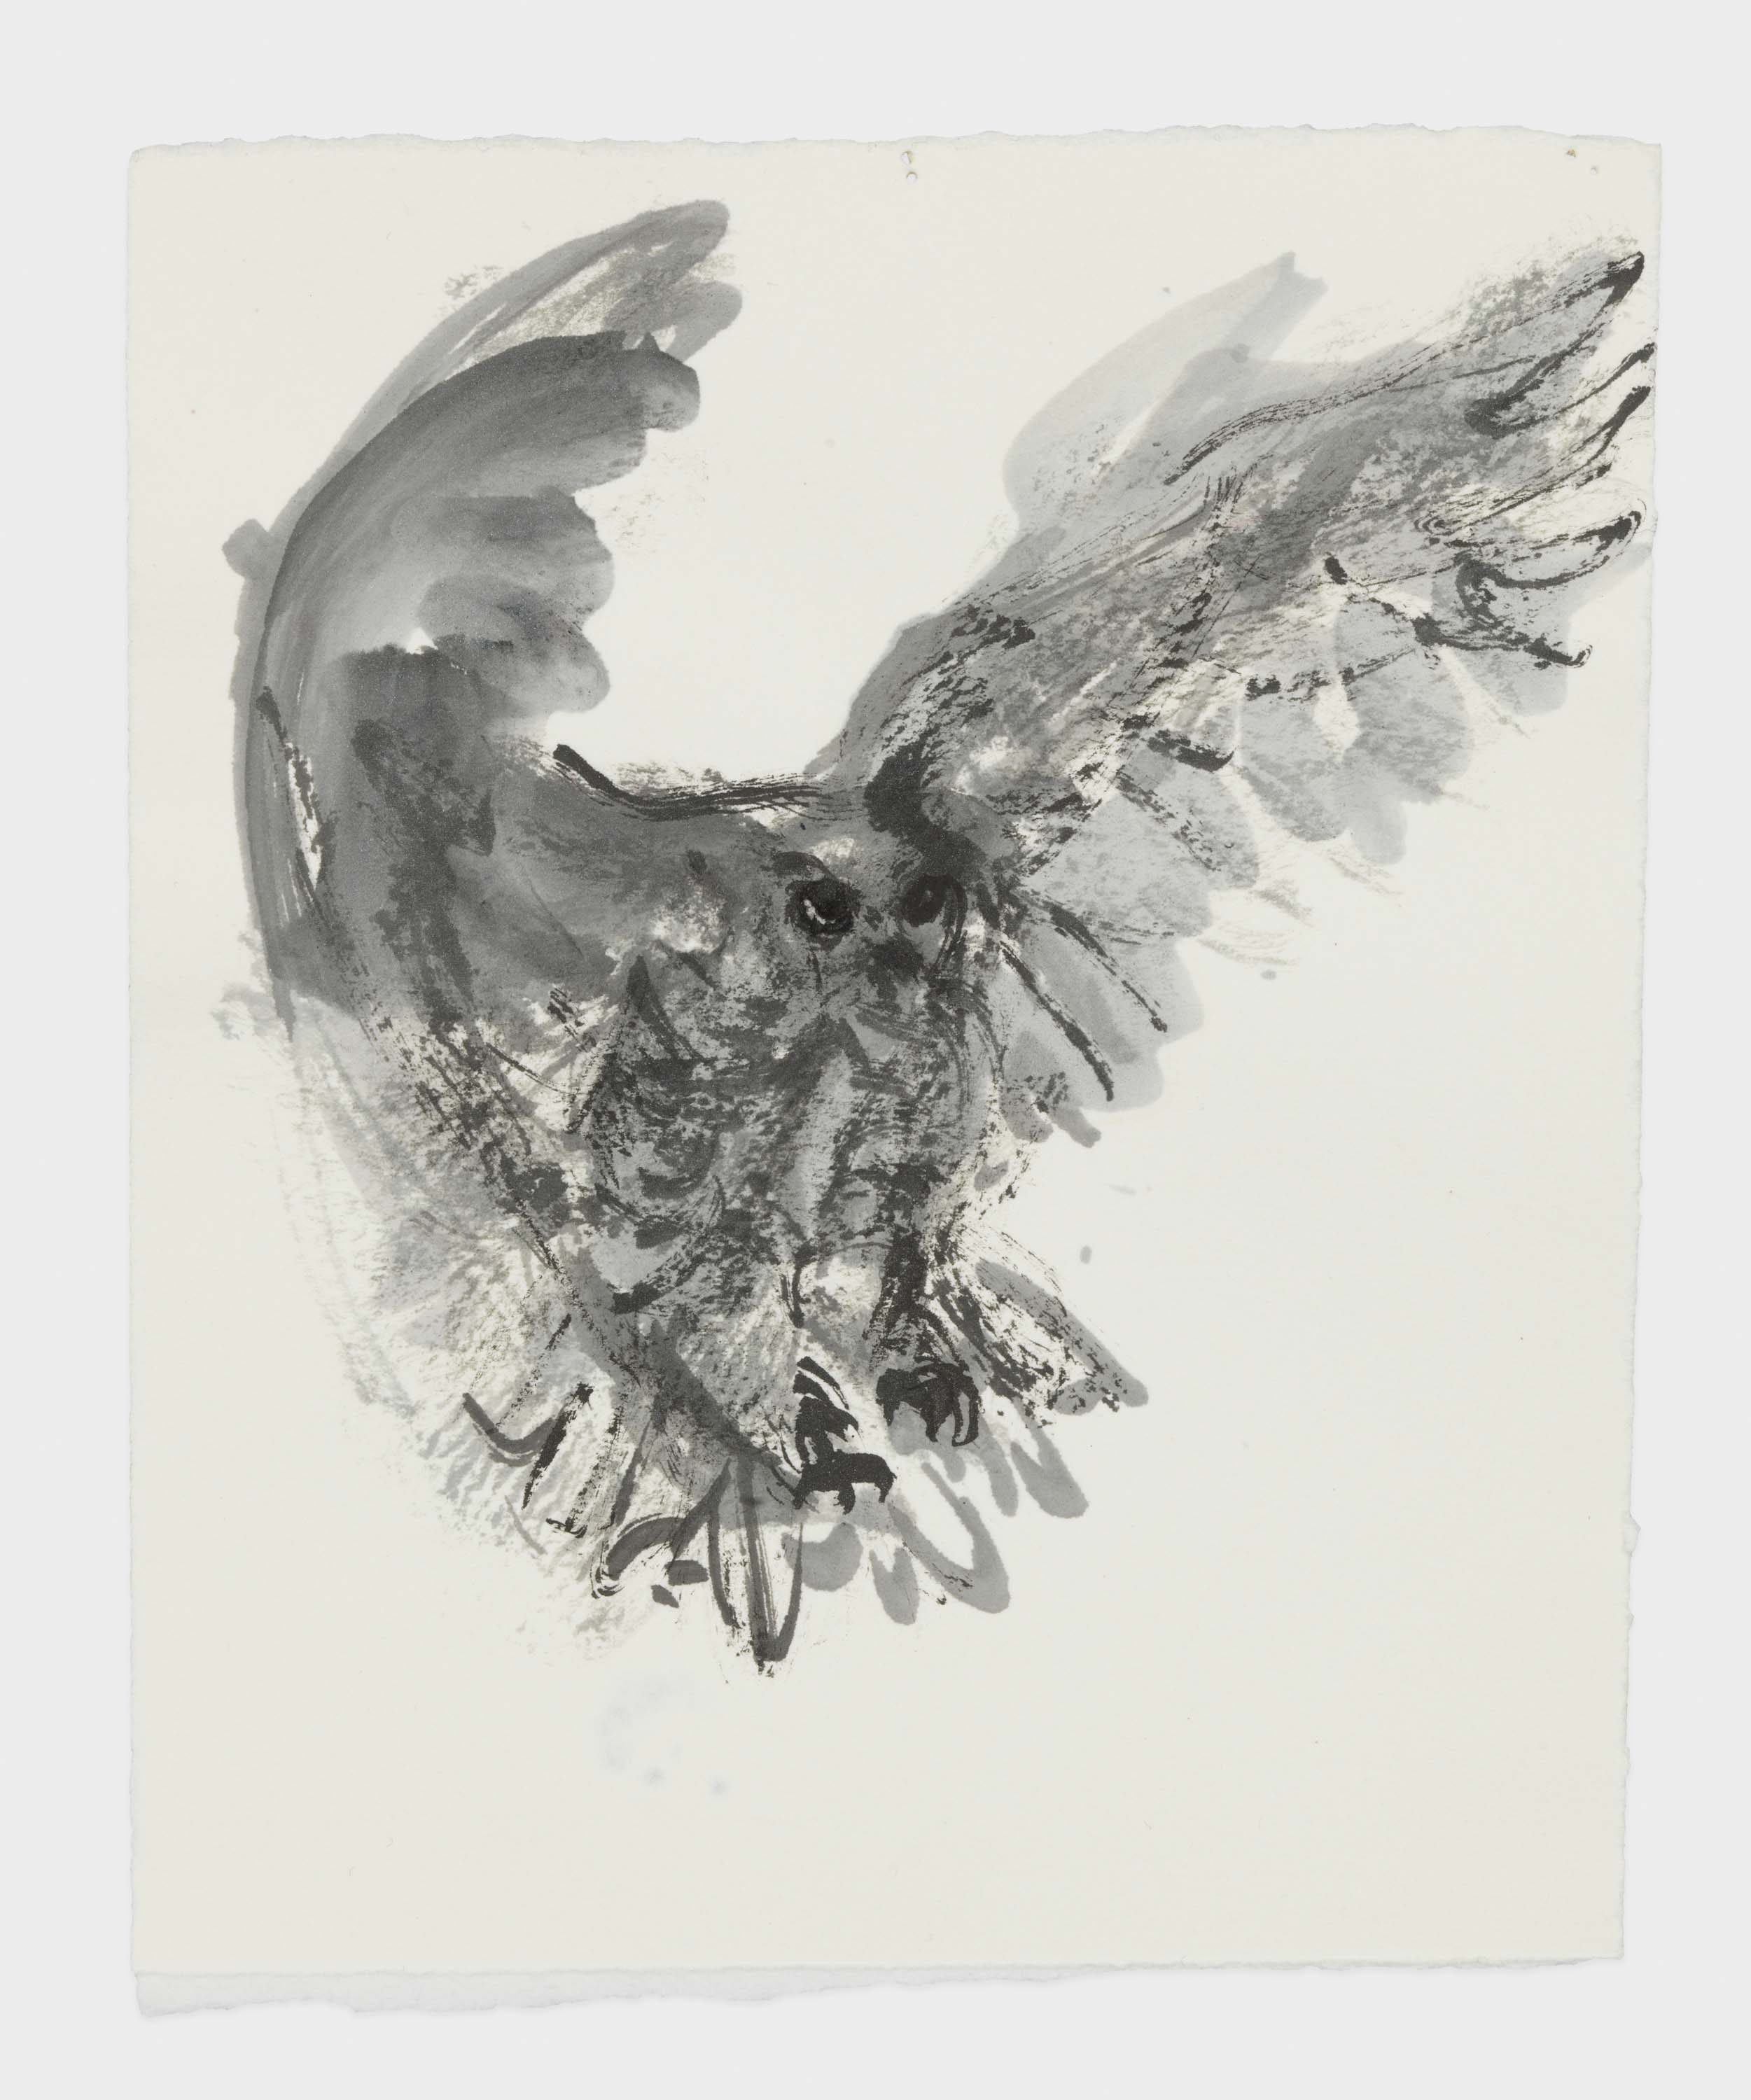 """Marlene Dumas, """"The owl"""", 2015-2016, Ink wash and metallic acrylic on paper, 6 7/8 x 5 3/4 inches 17.5 x 14.6 cm. Exposition """"Myths & Mortals"""", Galerie David Zwirner, New-York"""